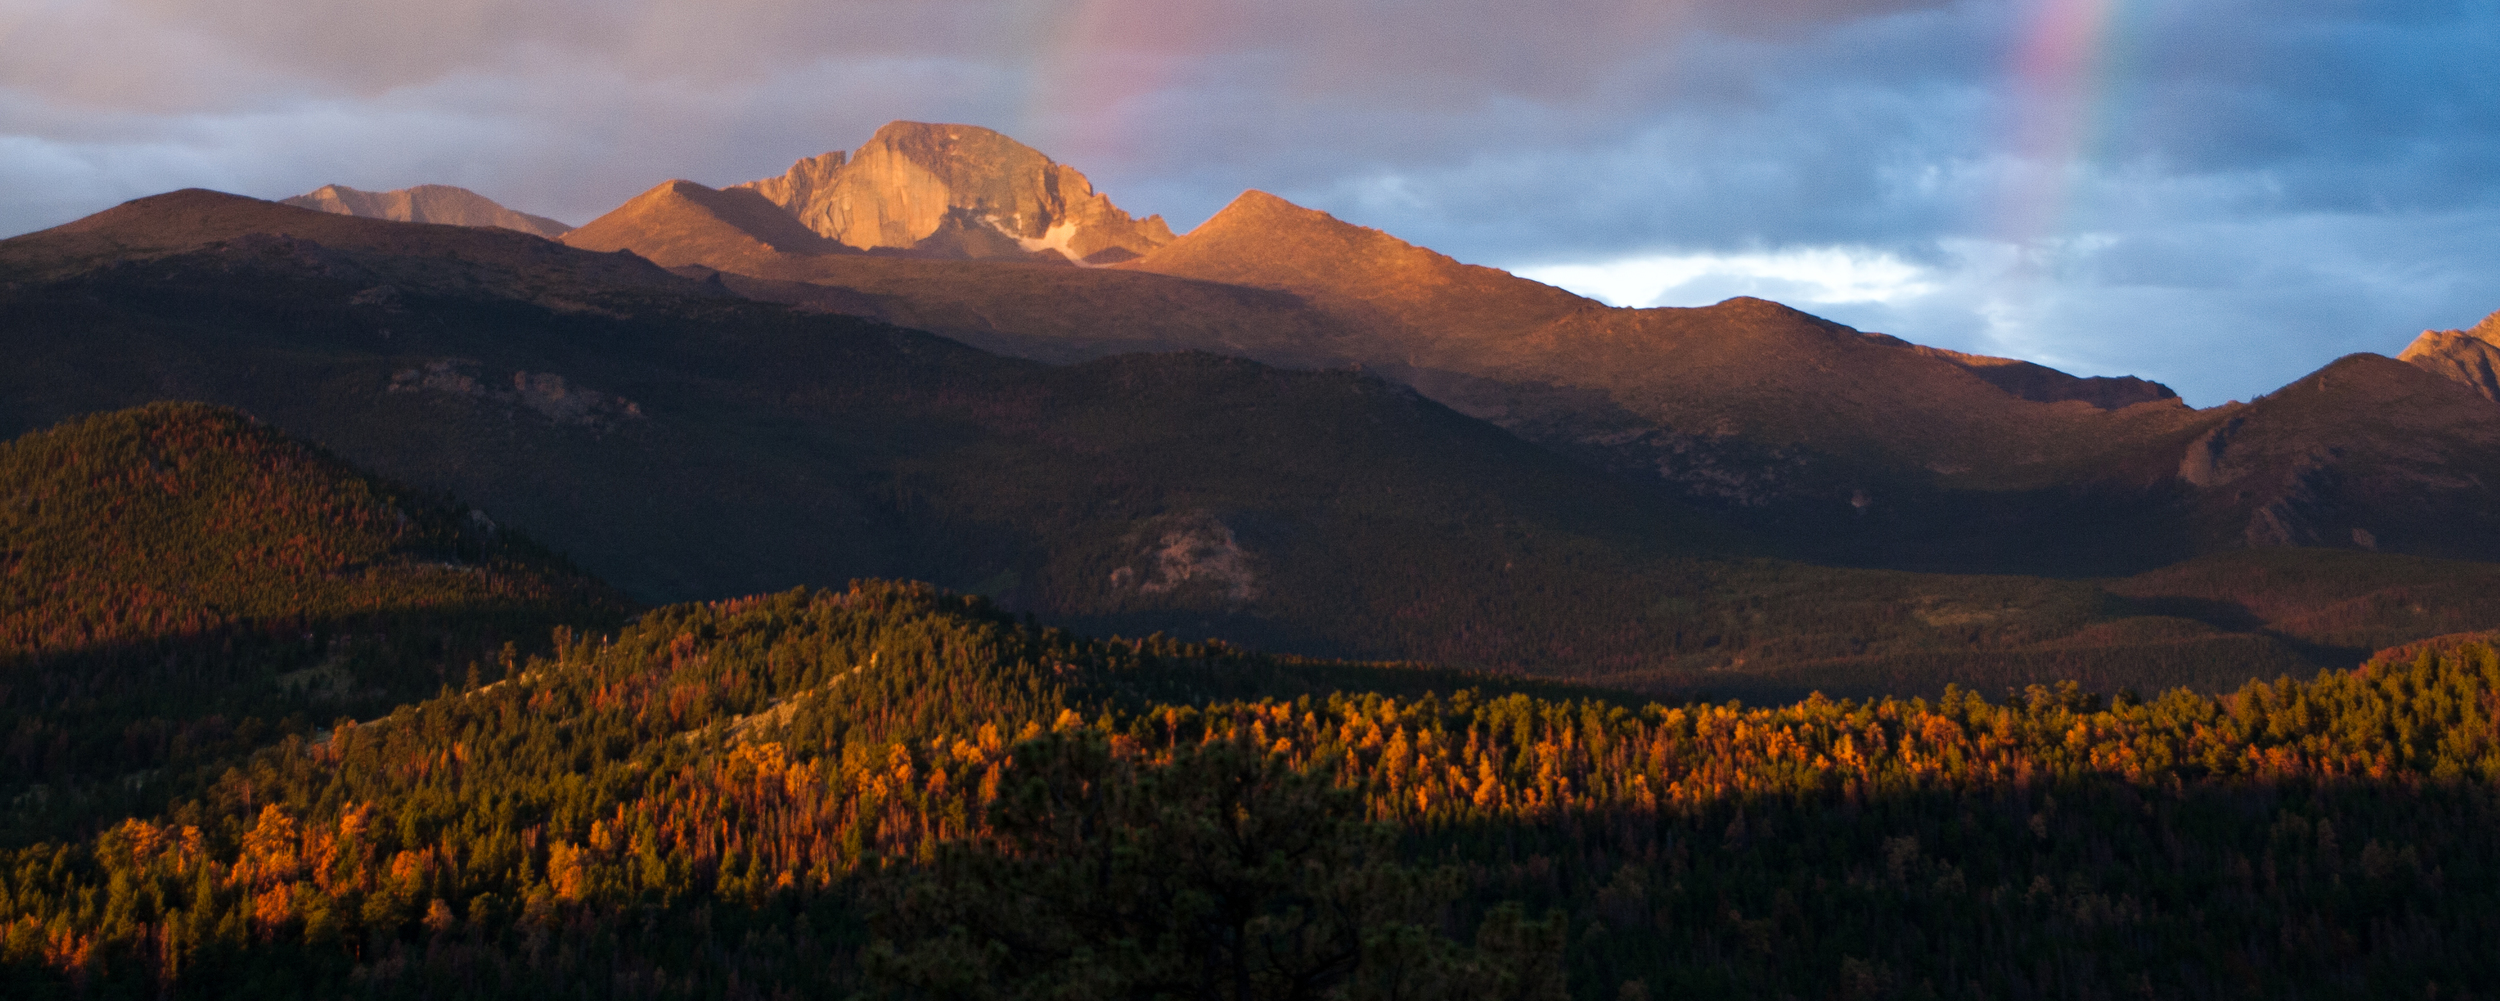 Artist in Residence - In July of 2010, I had the privilege of serving as Artist-in-Residence for Rocky Mountain National Park. This two-week residency allowed me to explore the park fully, and gather the ideas and inspiration needed to compose a new piece (see below).